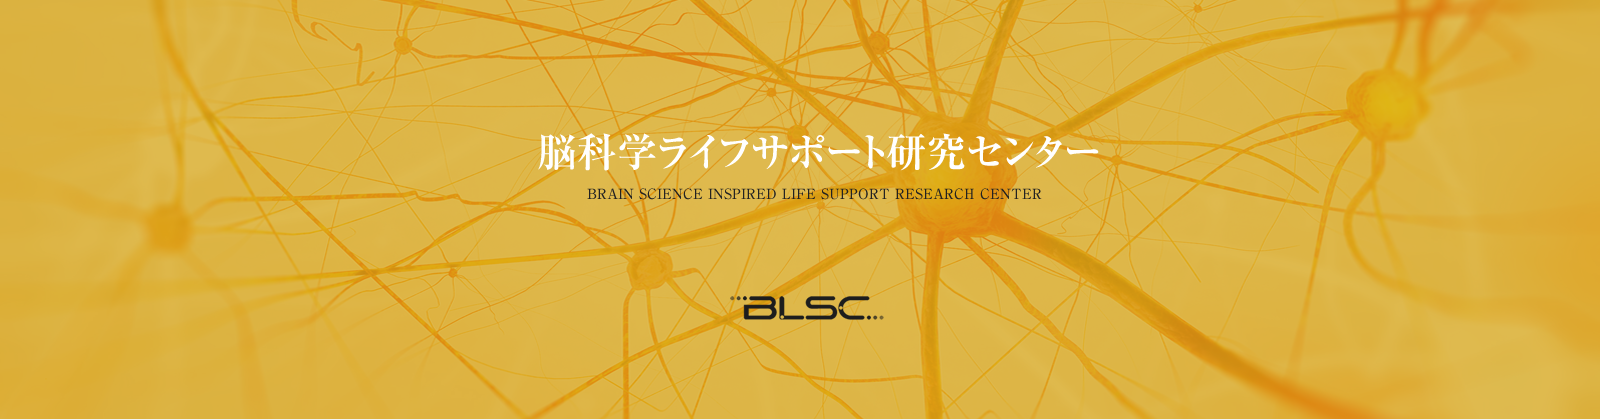 brain science inspired life support research center blsc brain